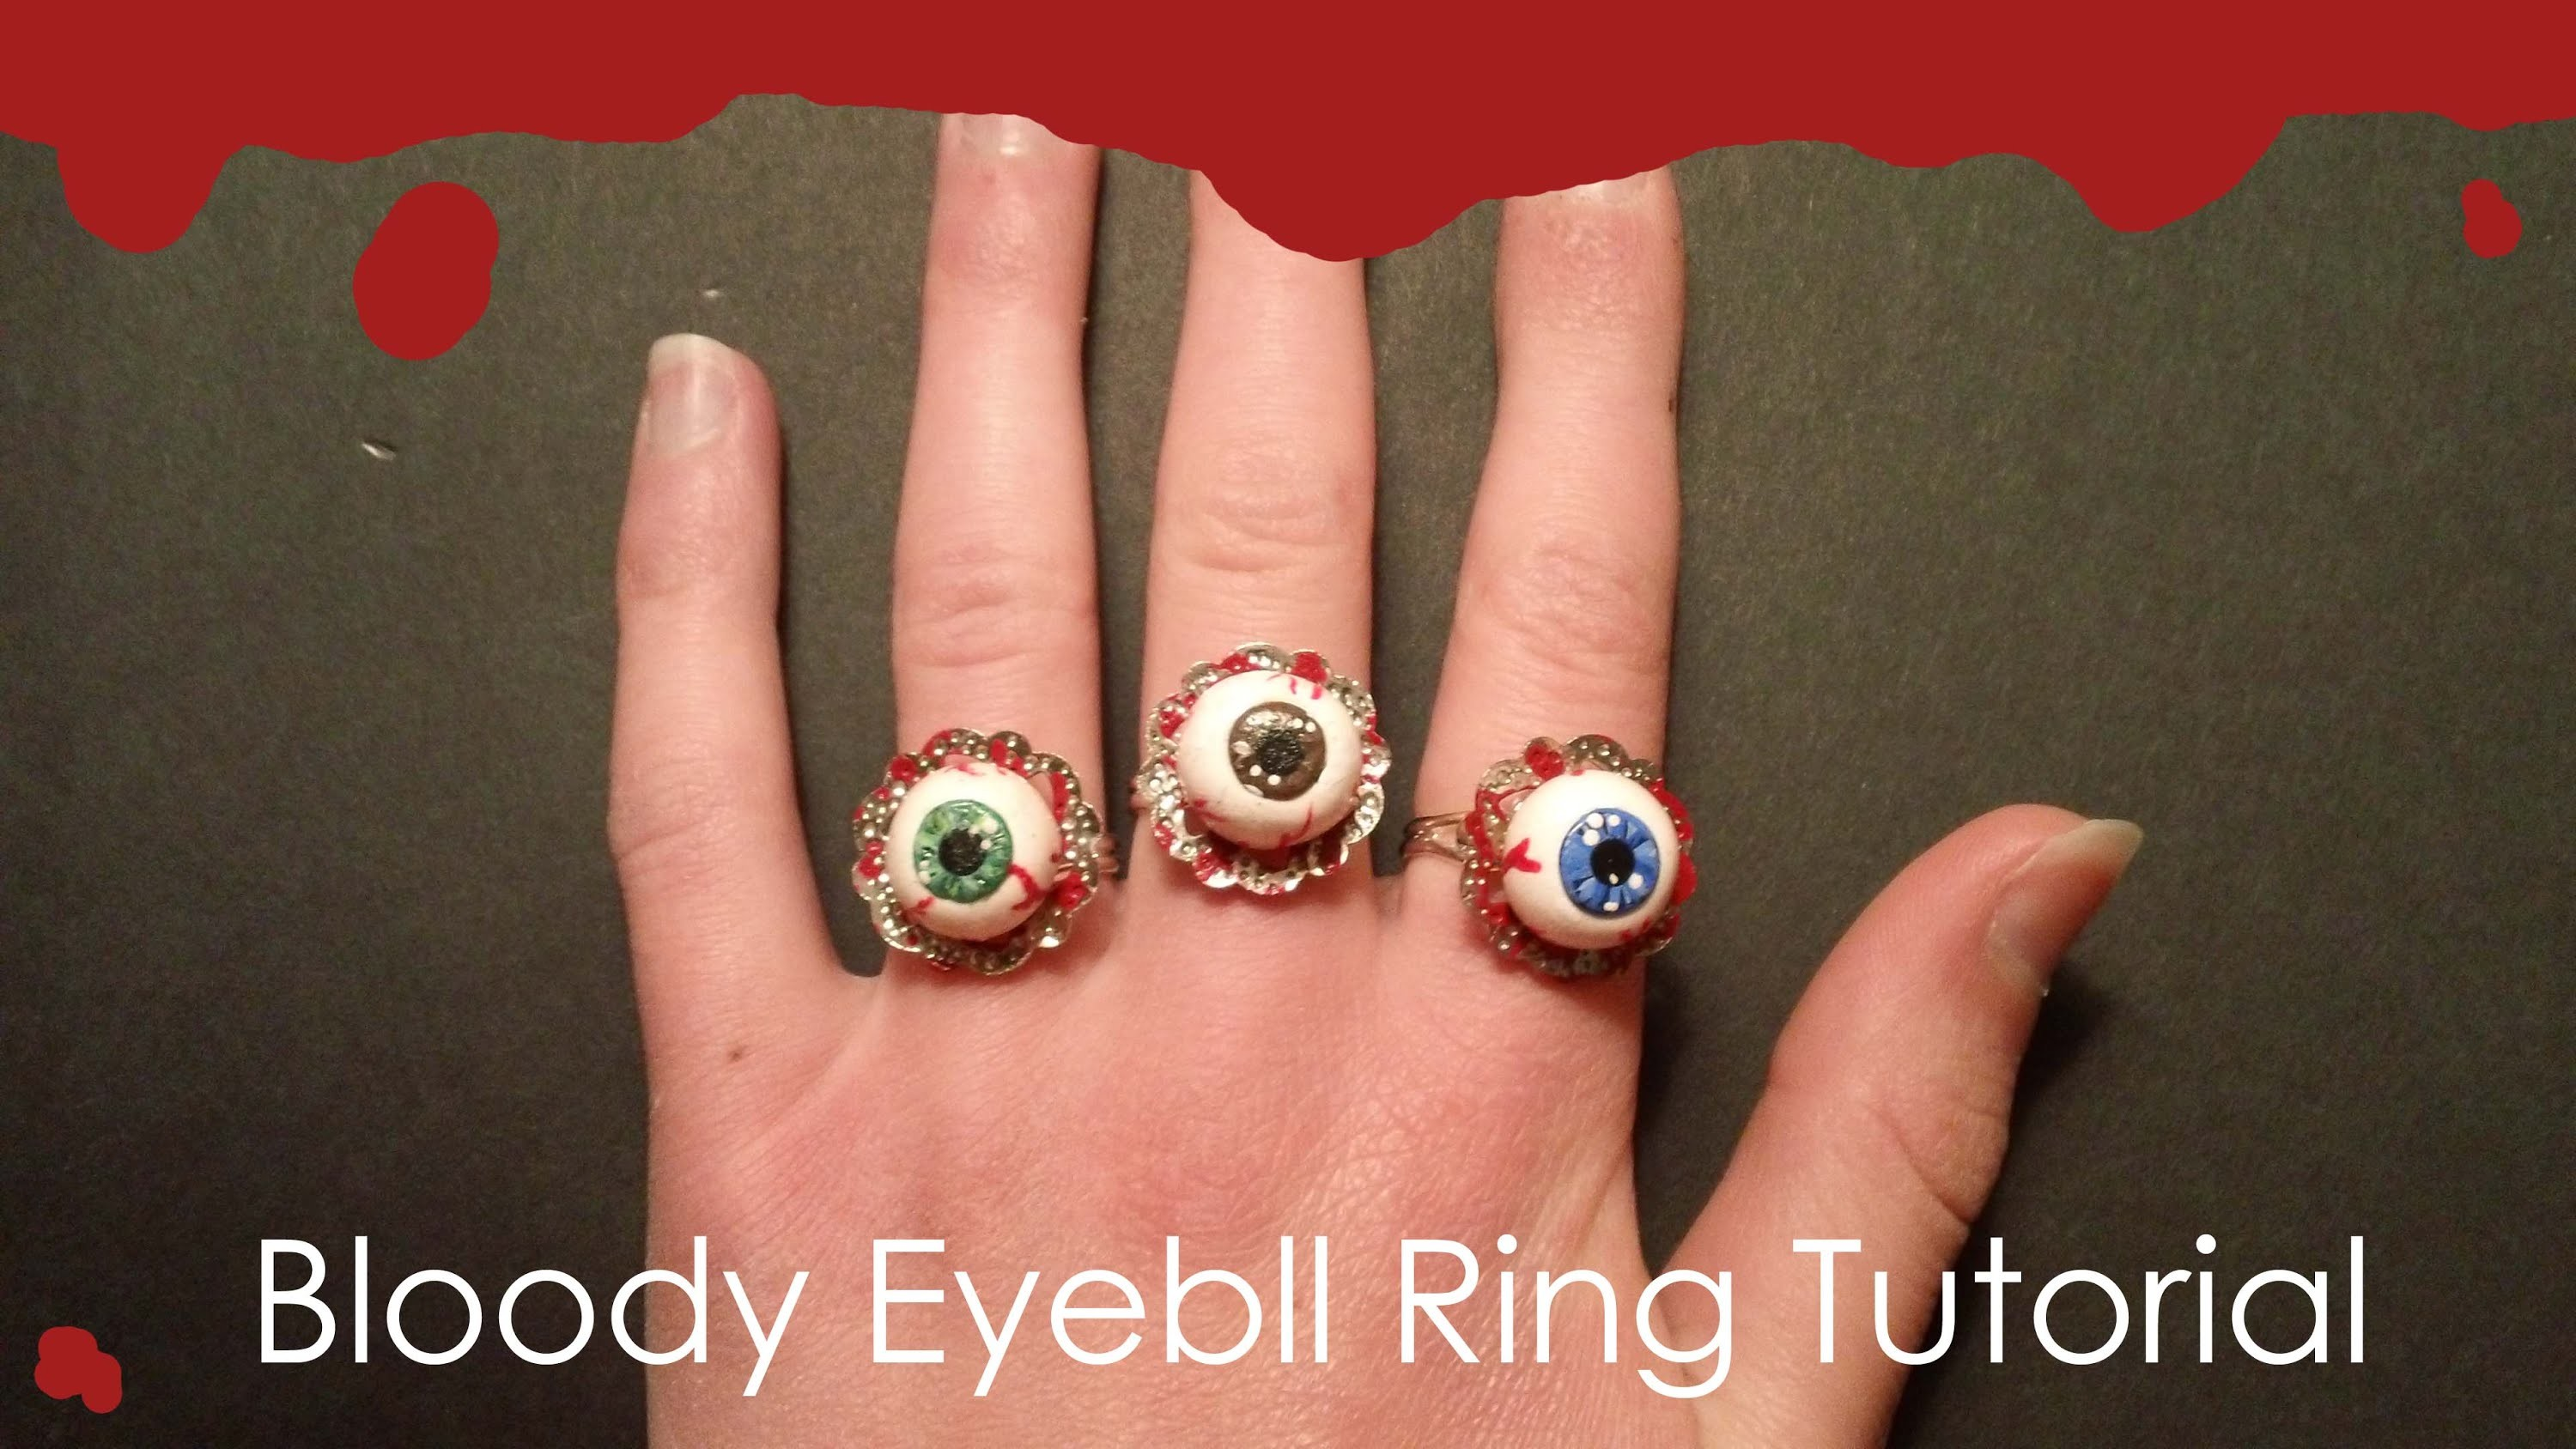 Bloody Eyeball Ring Tutorial